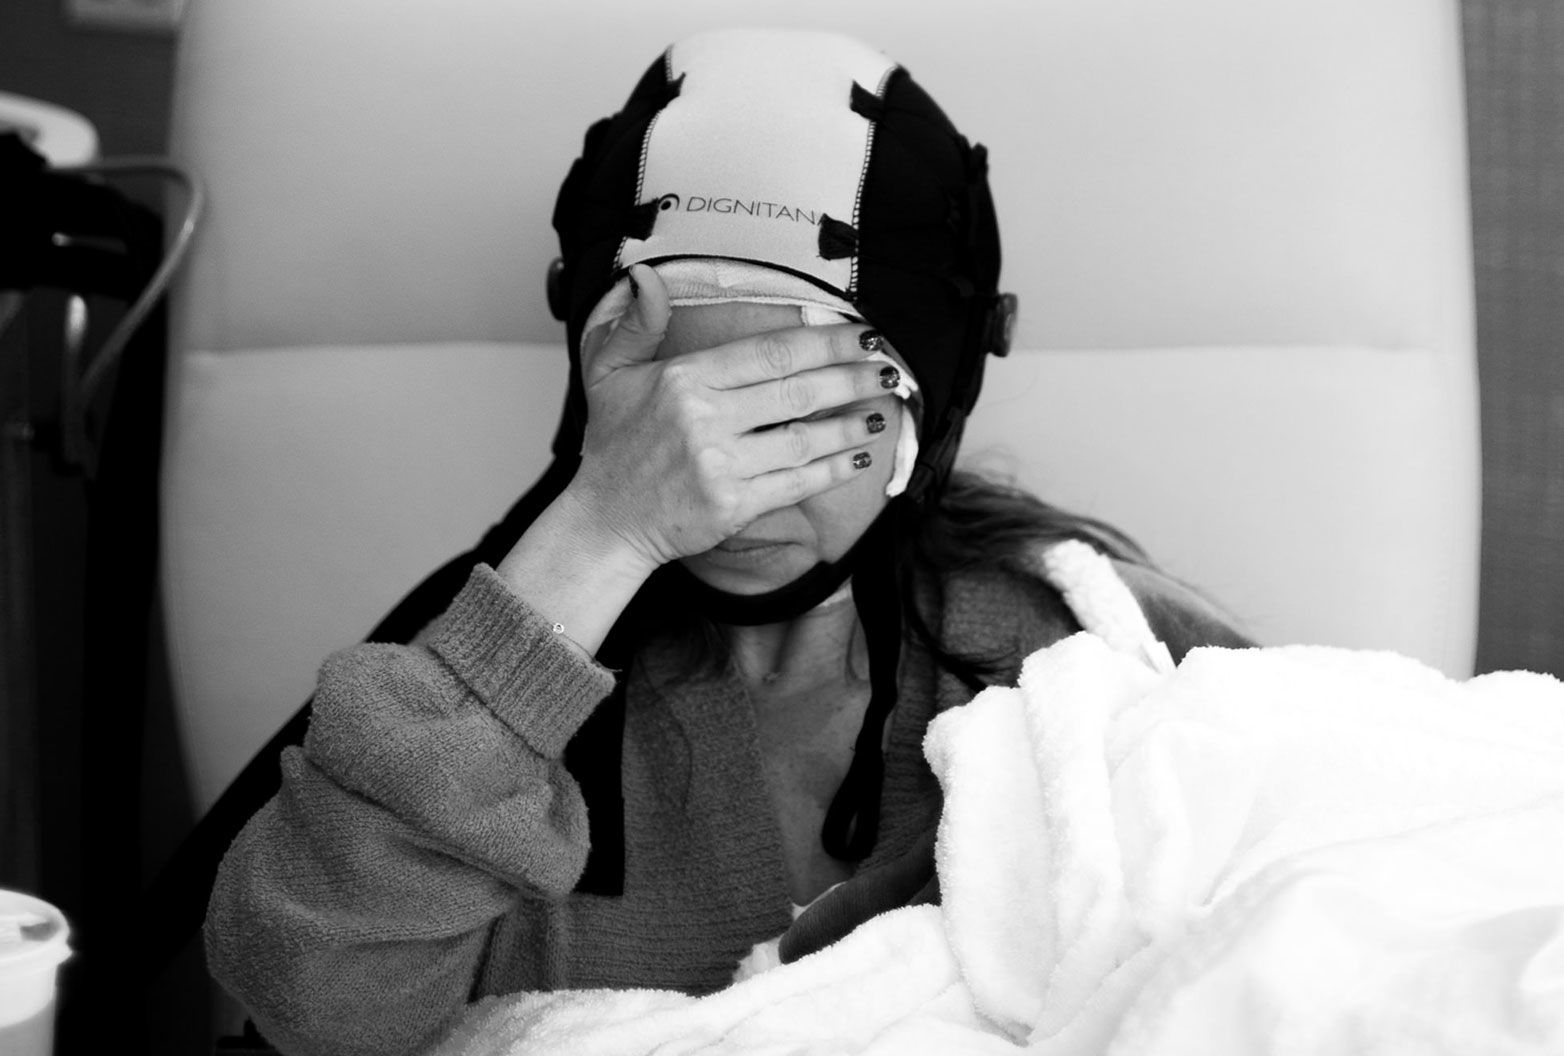 A woman sits in a padded chair covering her face with her hand. She also wears a cap over her head and appears to be in discomfort.